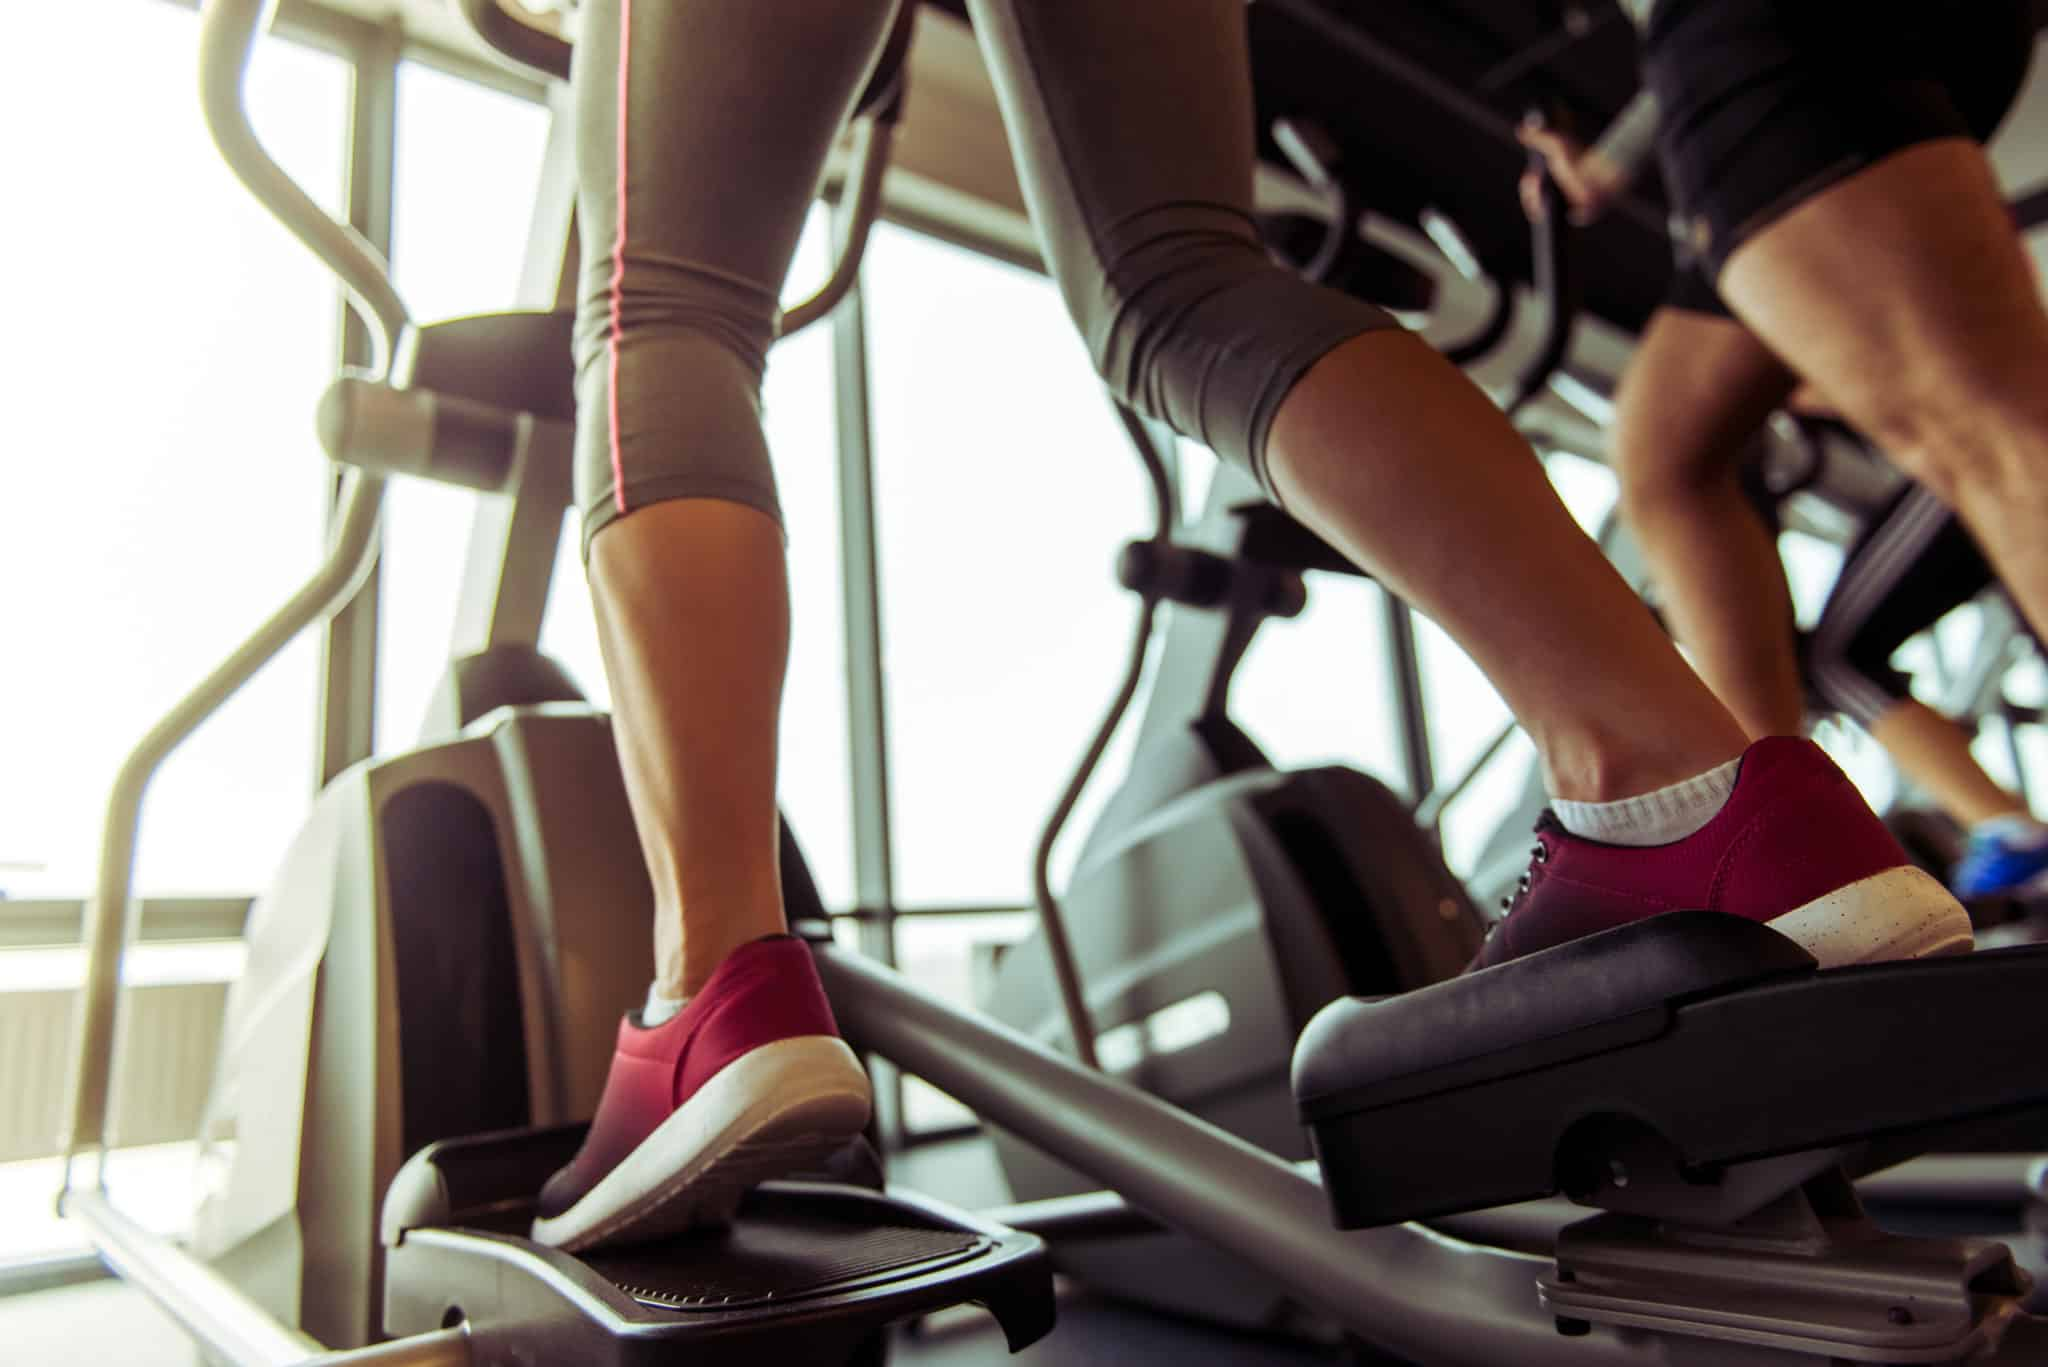 Try these intense interval-style elliptical workouts to boost your weight loss.